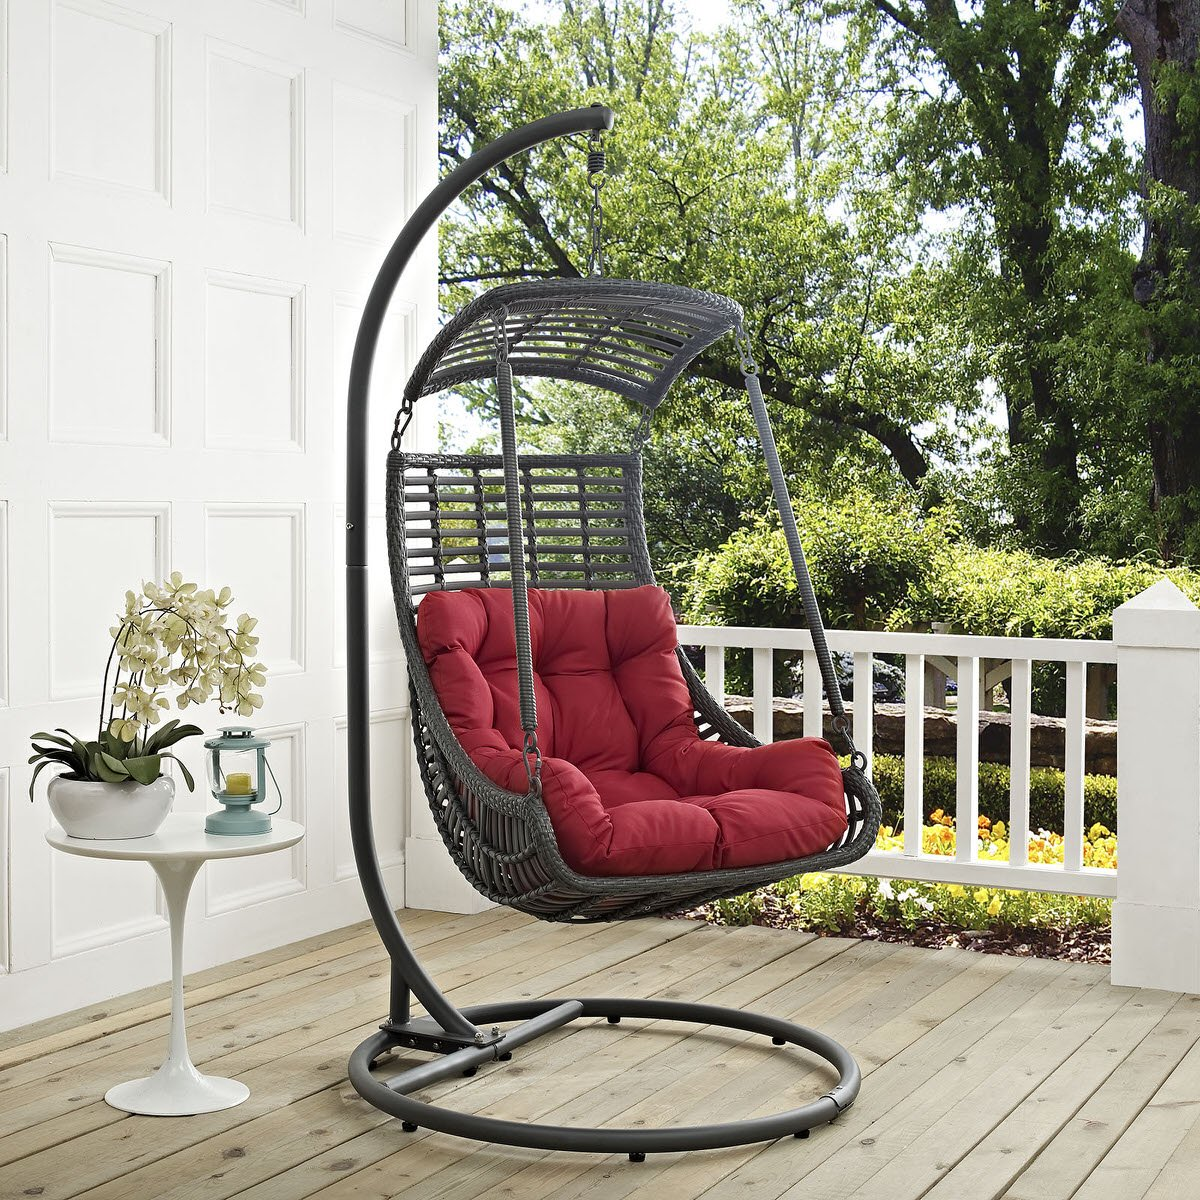 Swinging Chair Outdoor Jungle Outdoor Patio Swing Chair With Stand Red By Modern Living